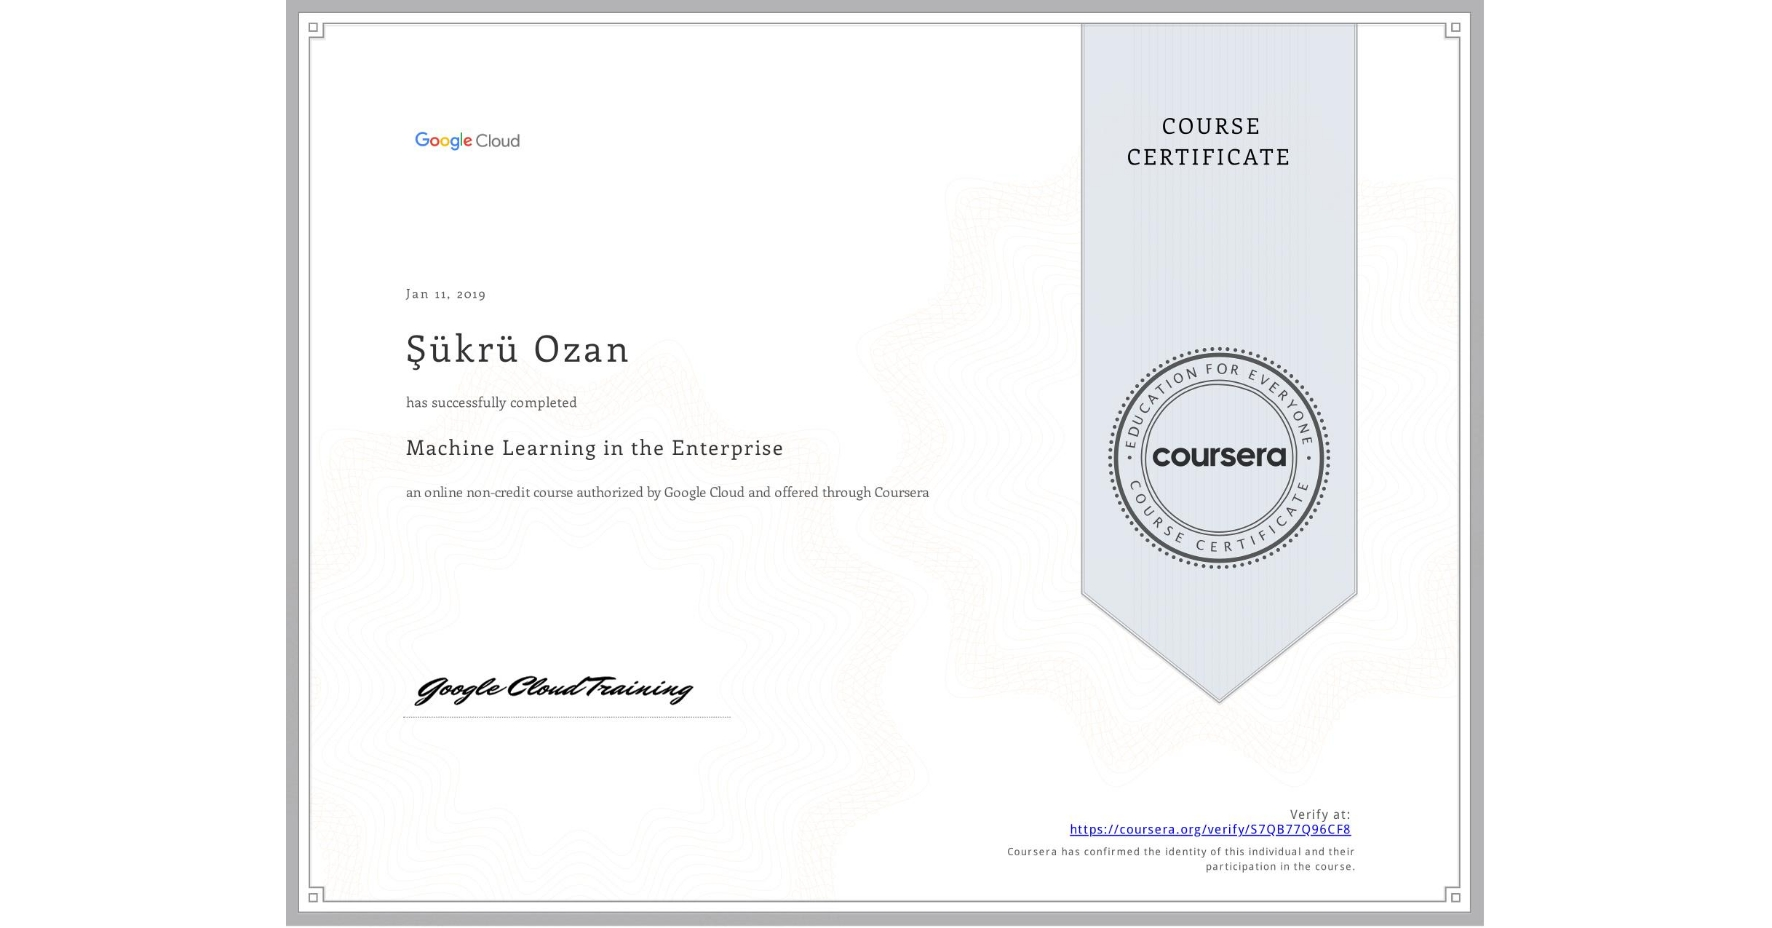 View certificate for Şükrü Ozan, Art and Science of Machine Learning, an online non-credit course authorized by Google Cloud and offered through Coursera